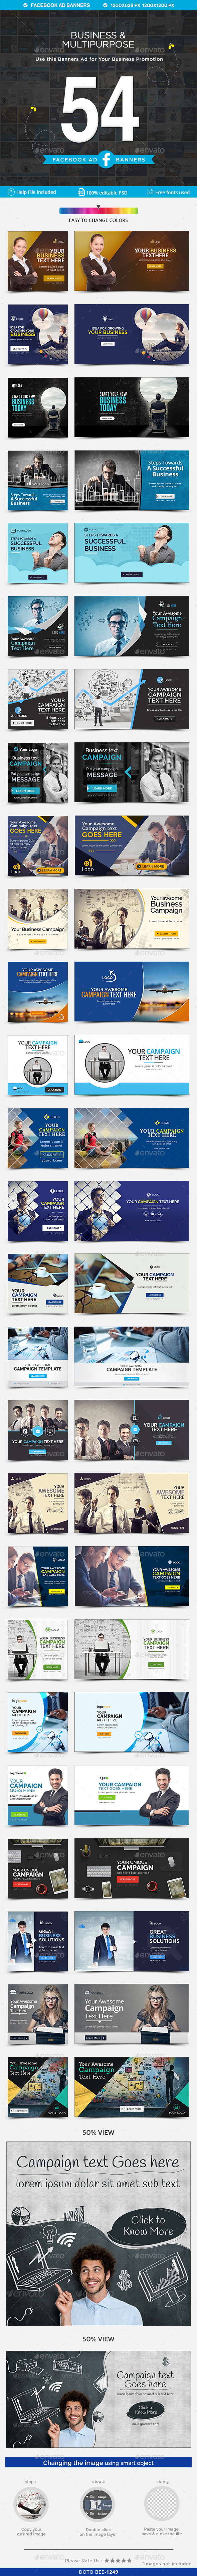 Facebook Ad Banners - 27 Designs - Banners & Ads Web Elements